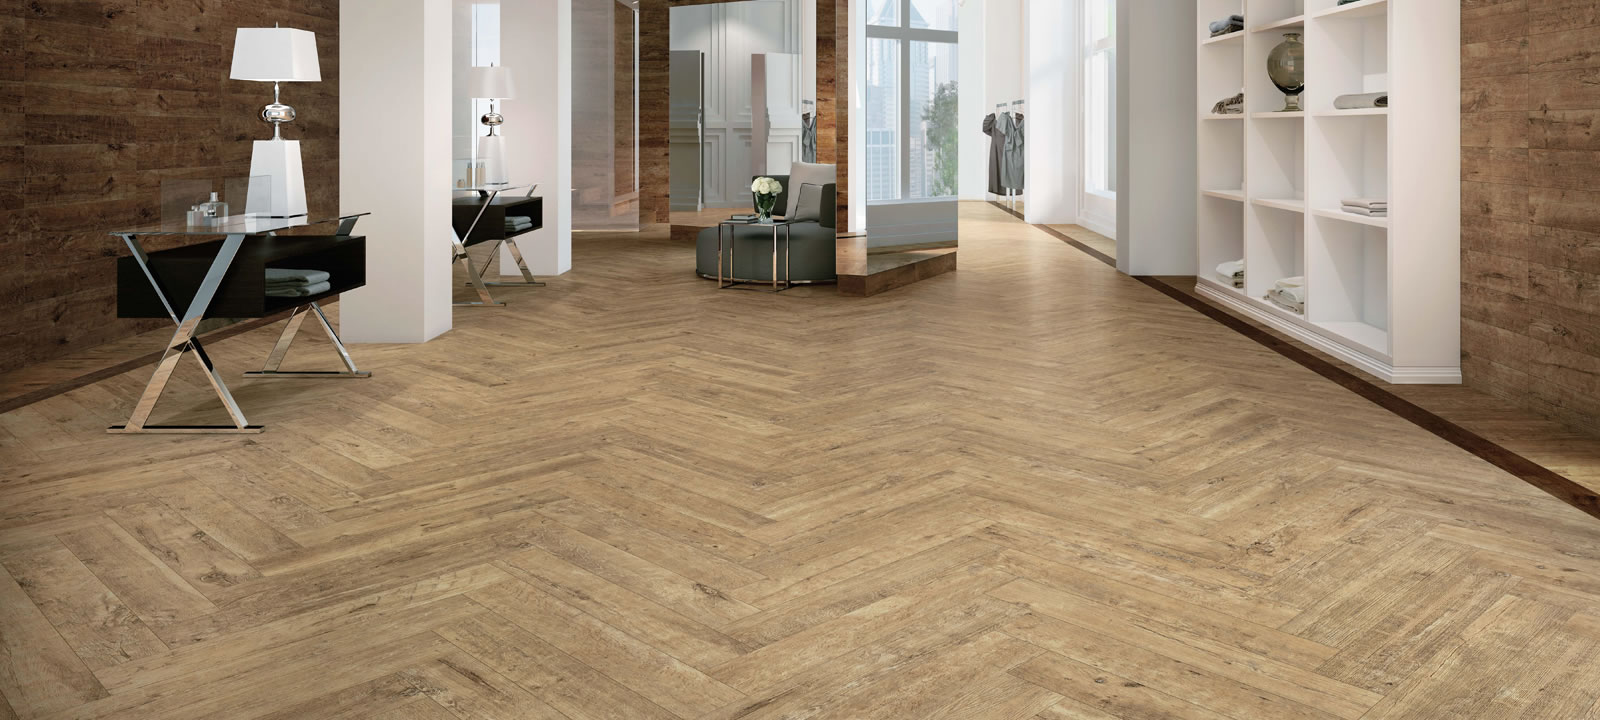 Minoli Axis Golden Oak Wood Effect Tiles 00